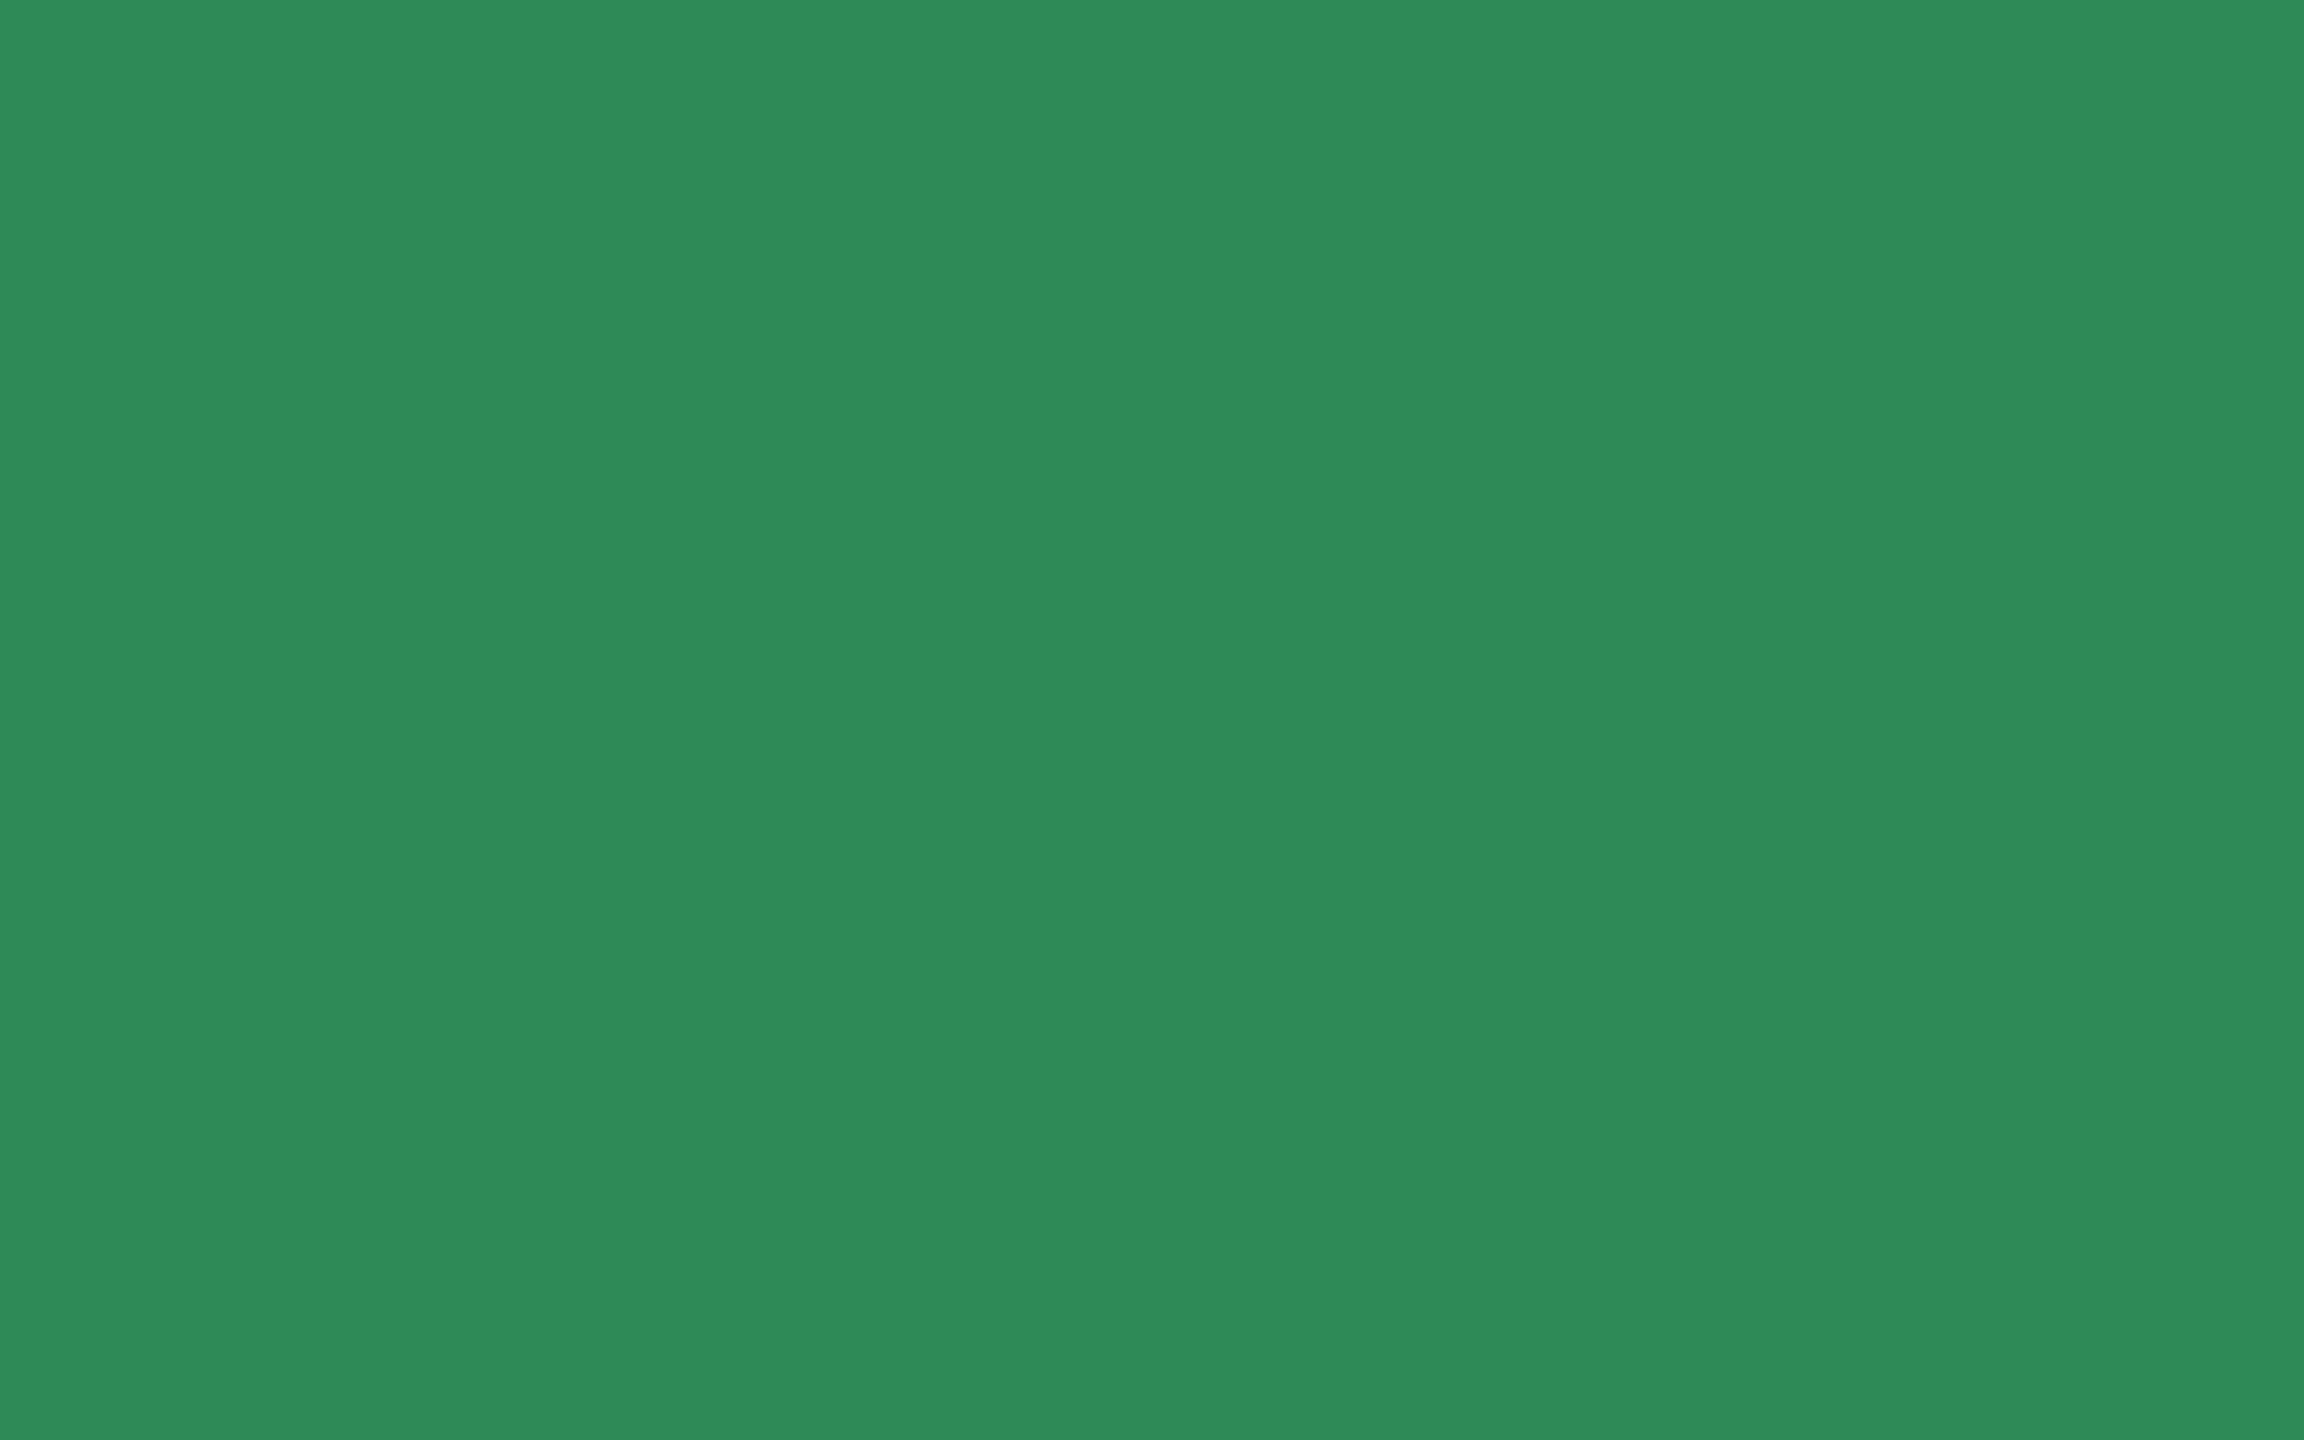 2304x1440 Sea Green Solid Color Background